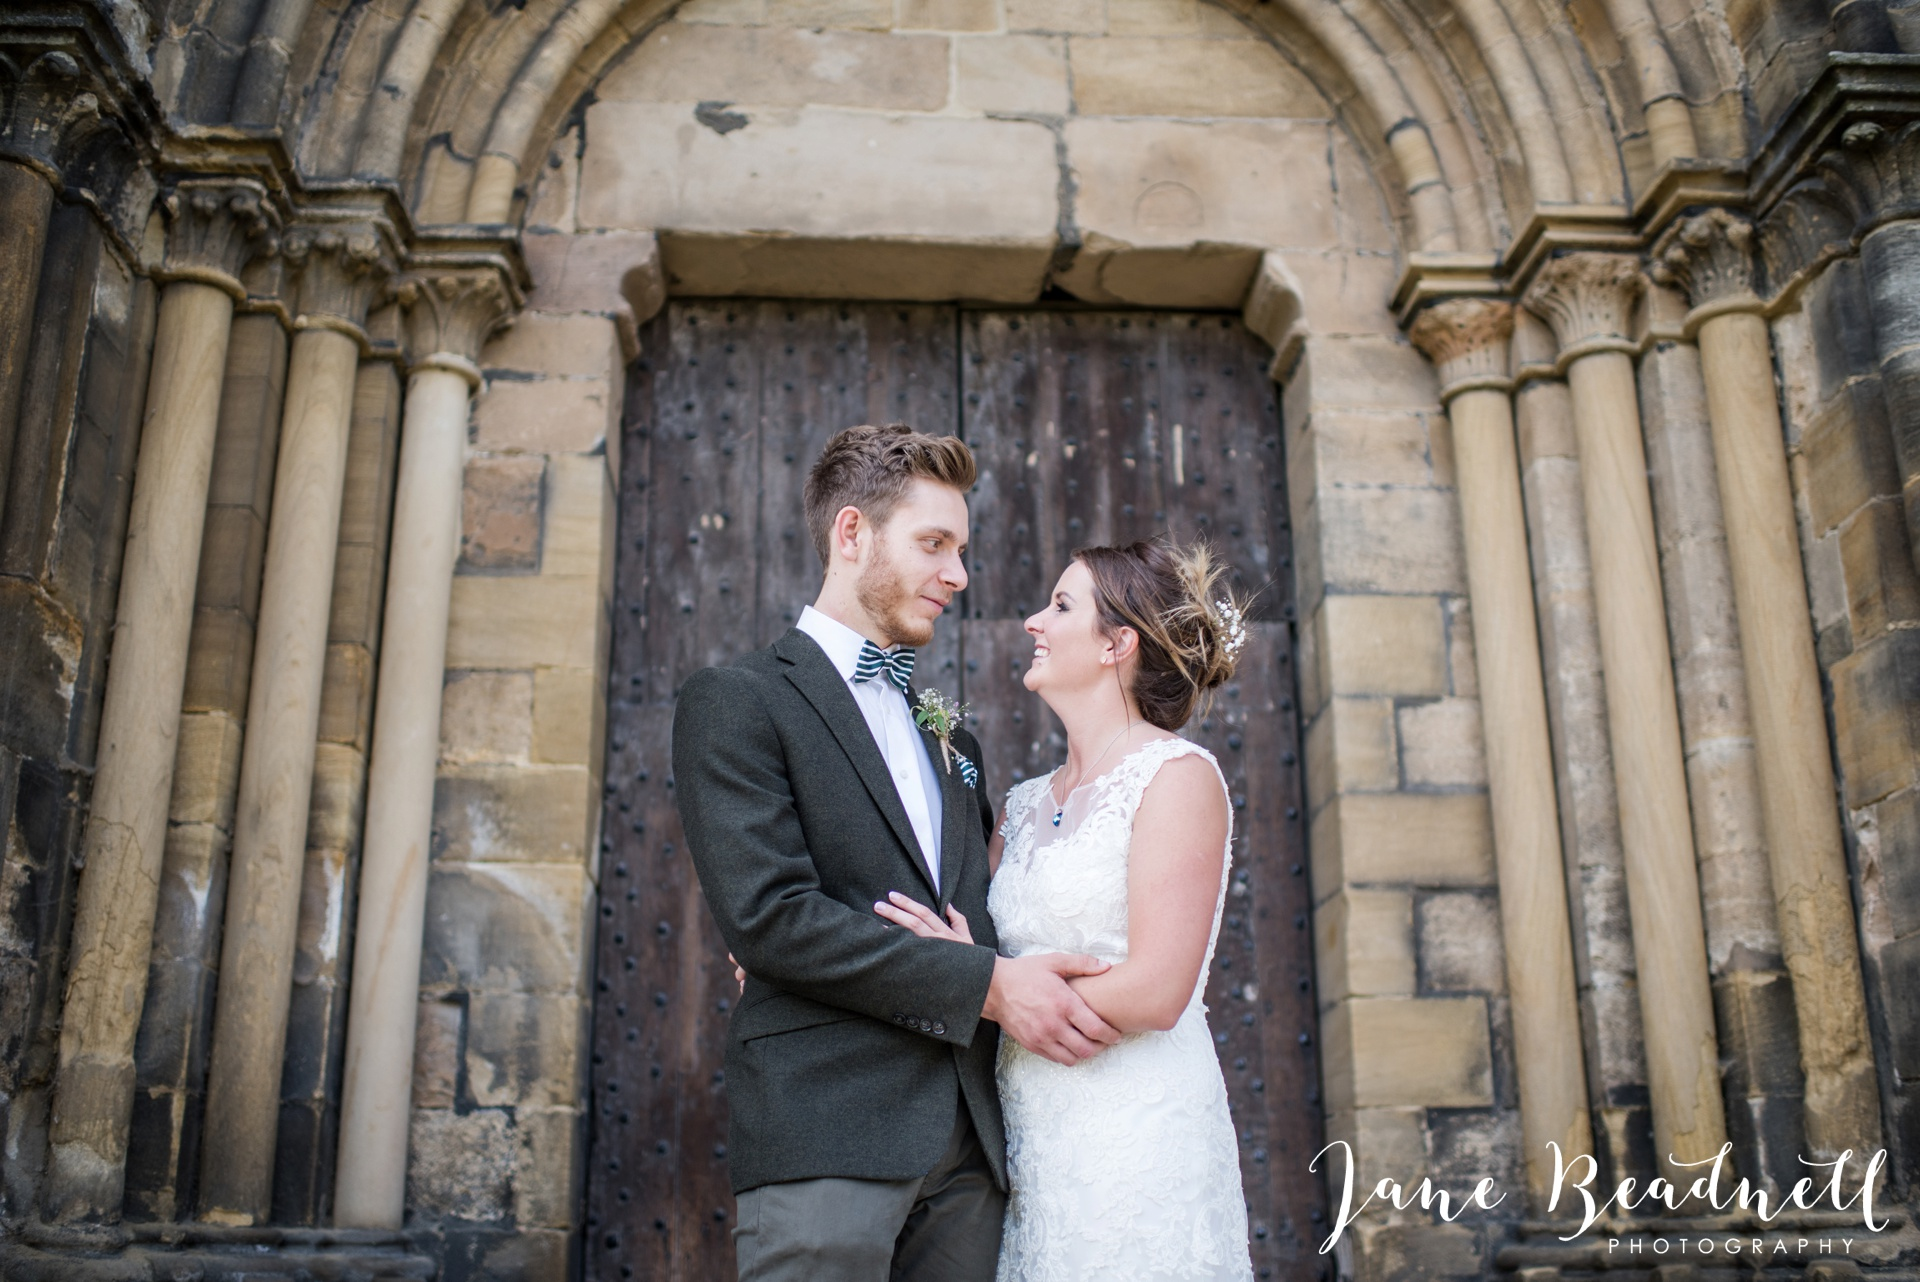 Jane Beadnell fine art wedding photographer The Old Deanery Ripon_0083